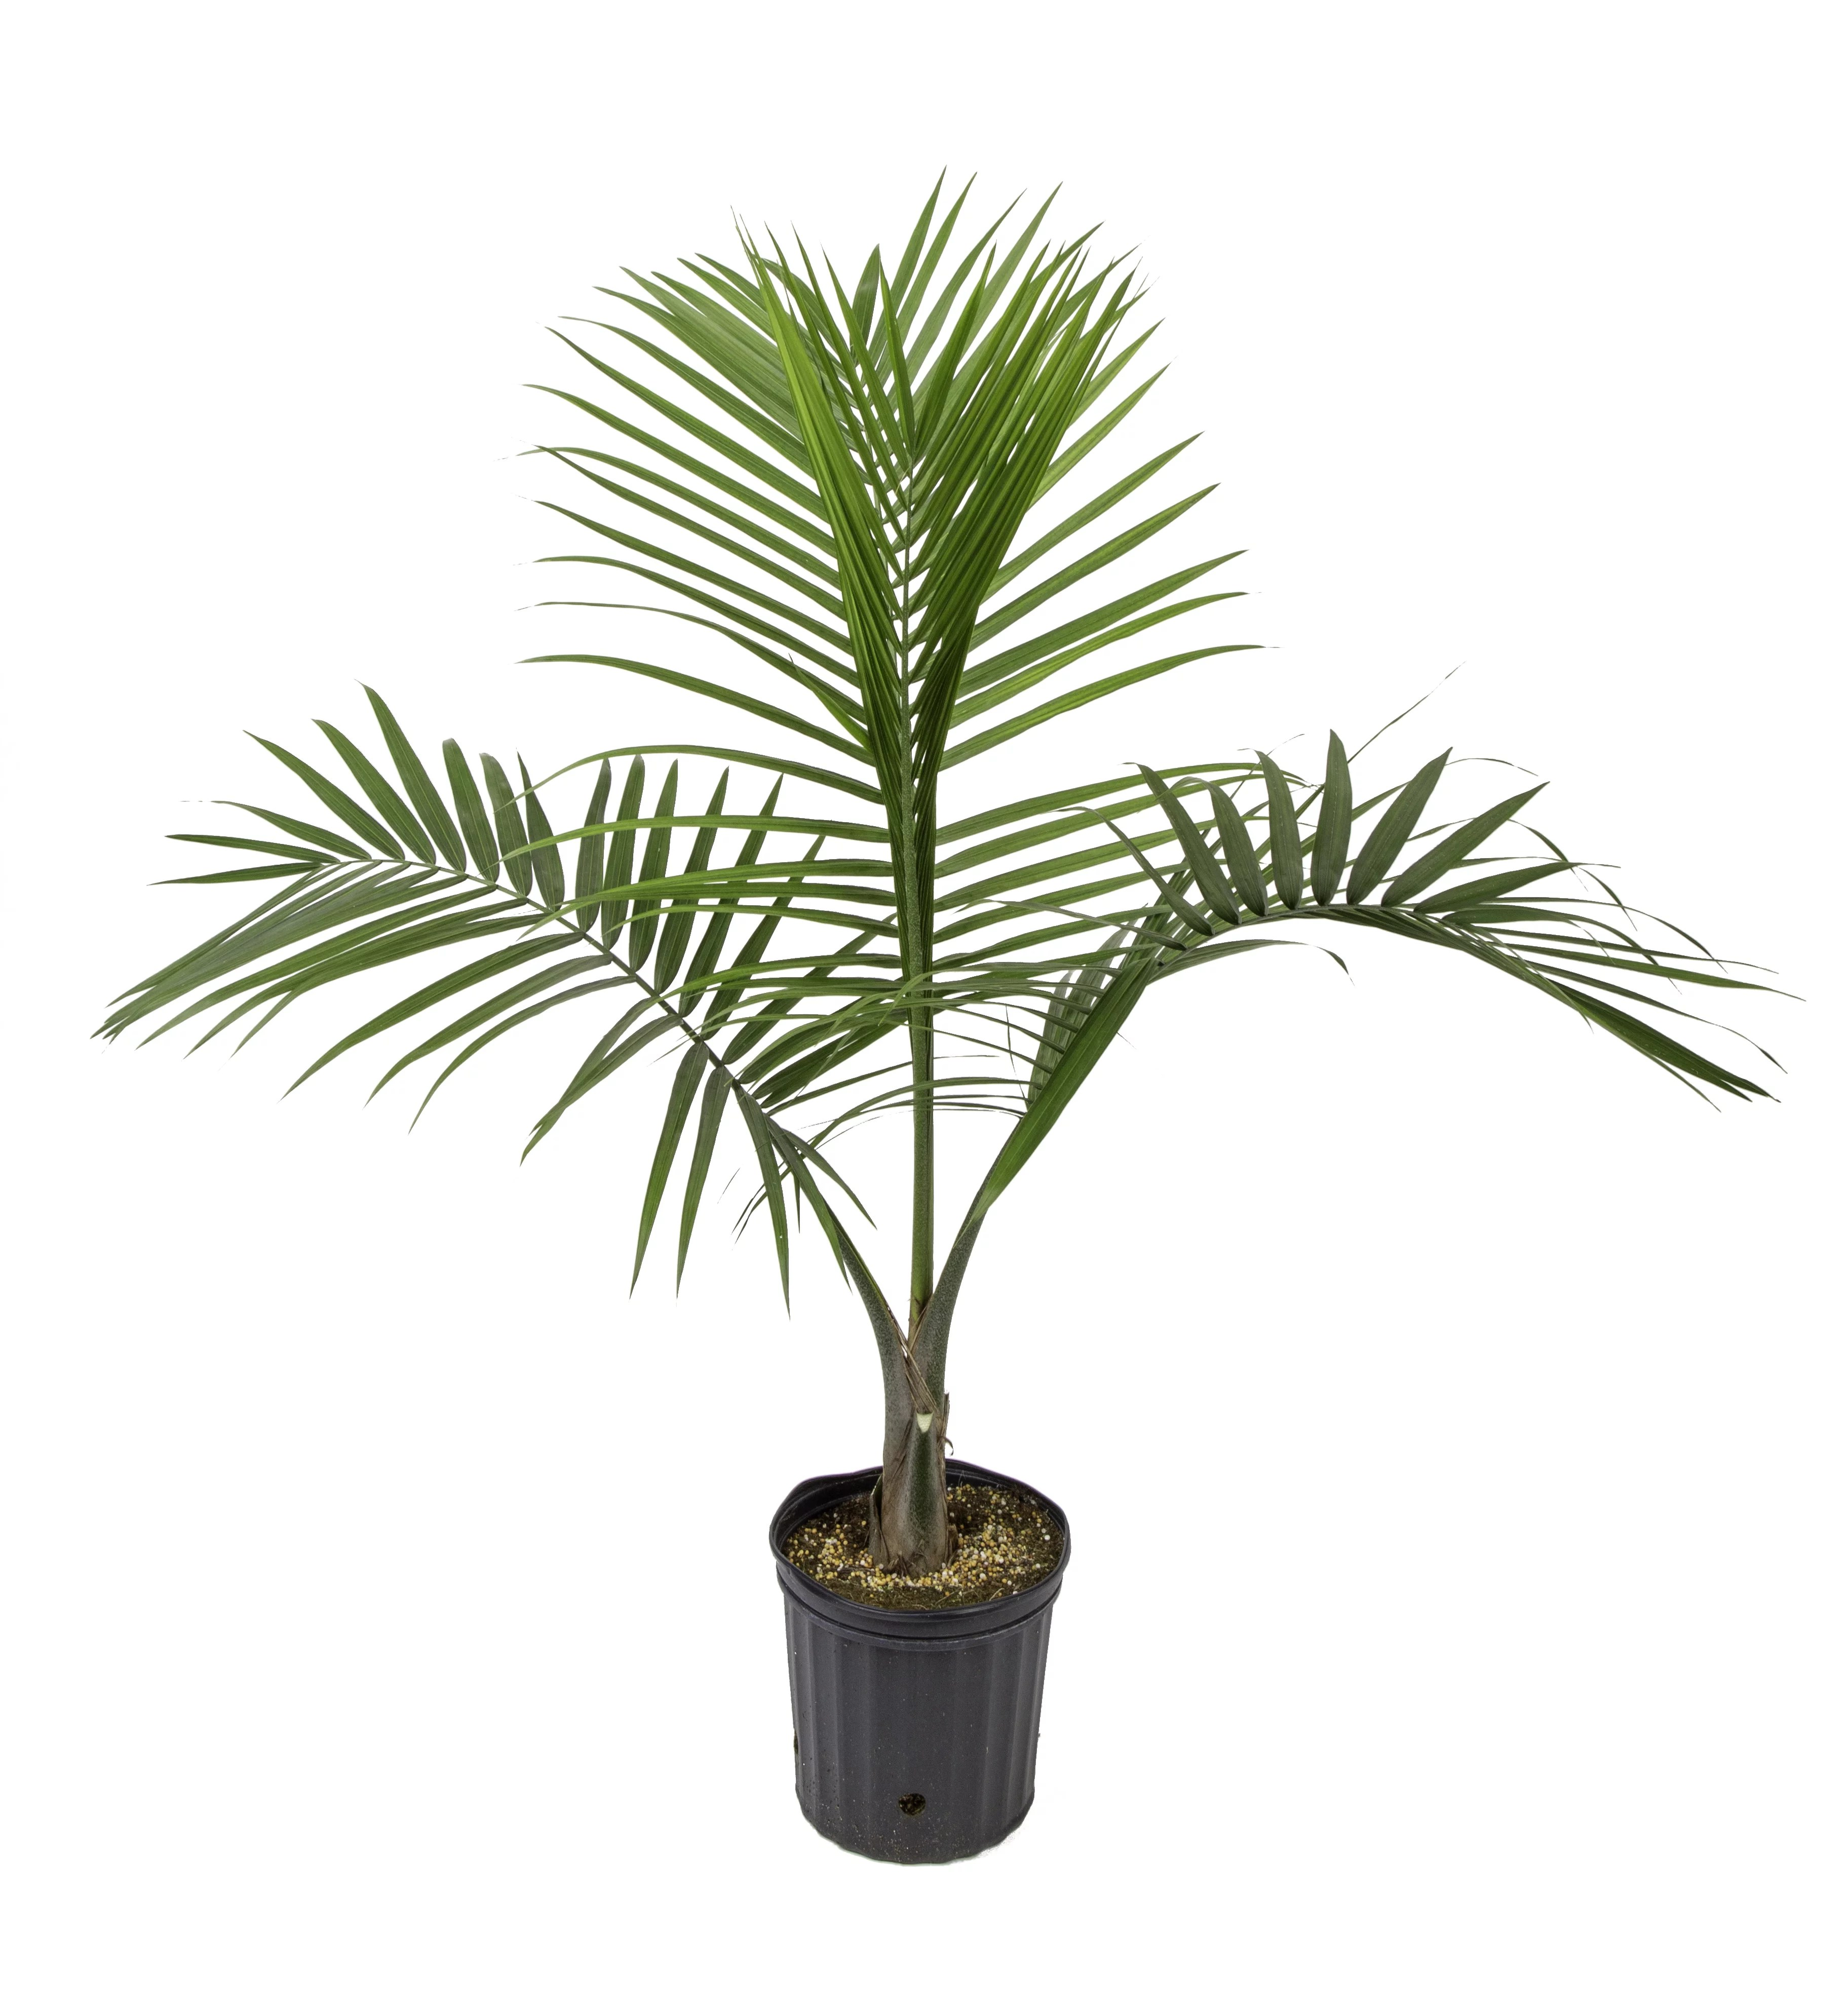 costa farms live indoor 3ft tall green majesty palm tree indirect sunlight plant in 10in grower pot walmart com